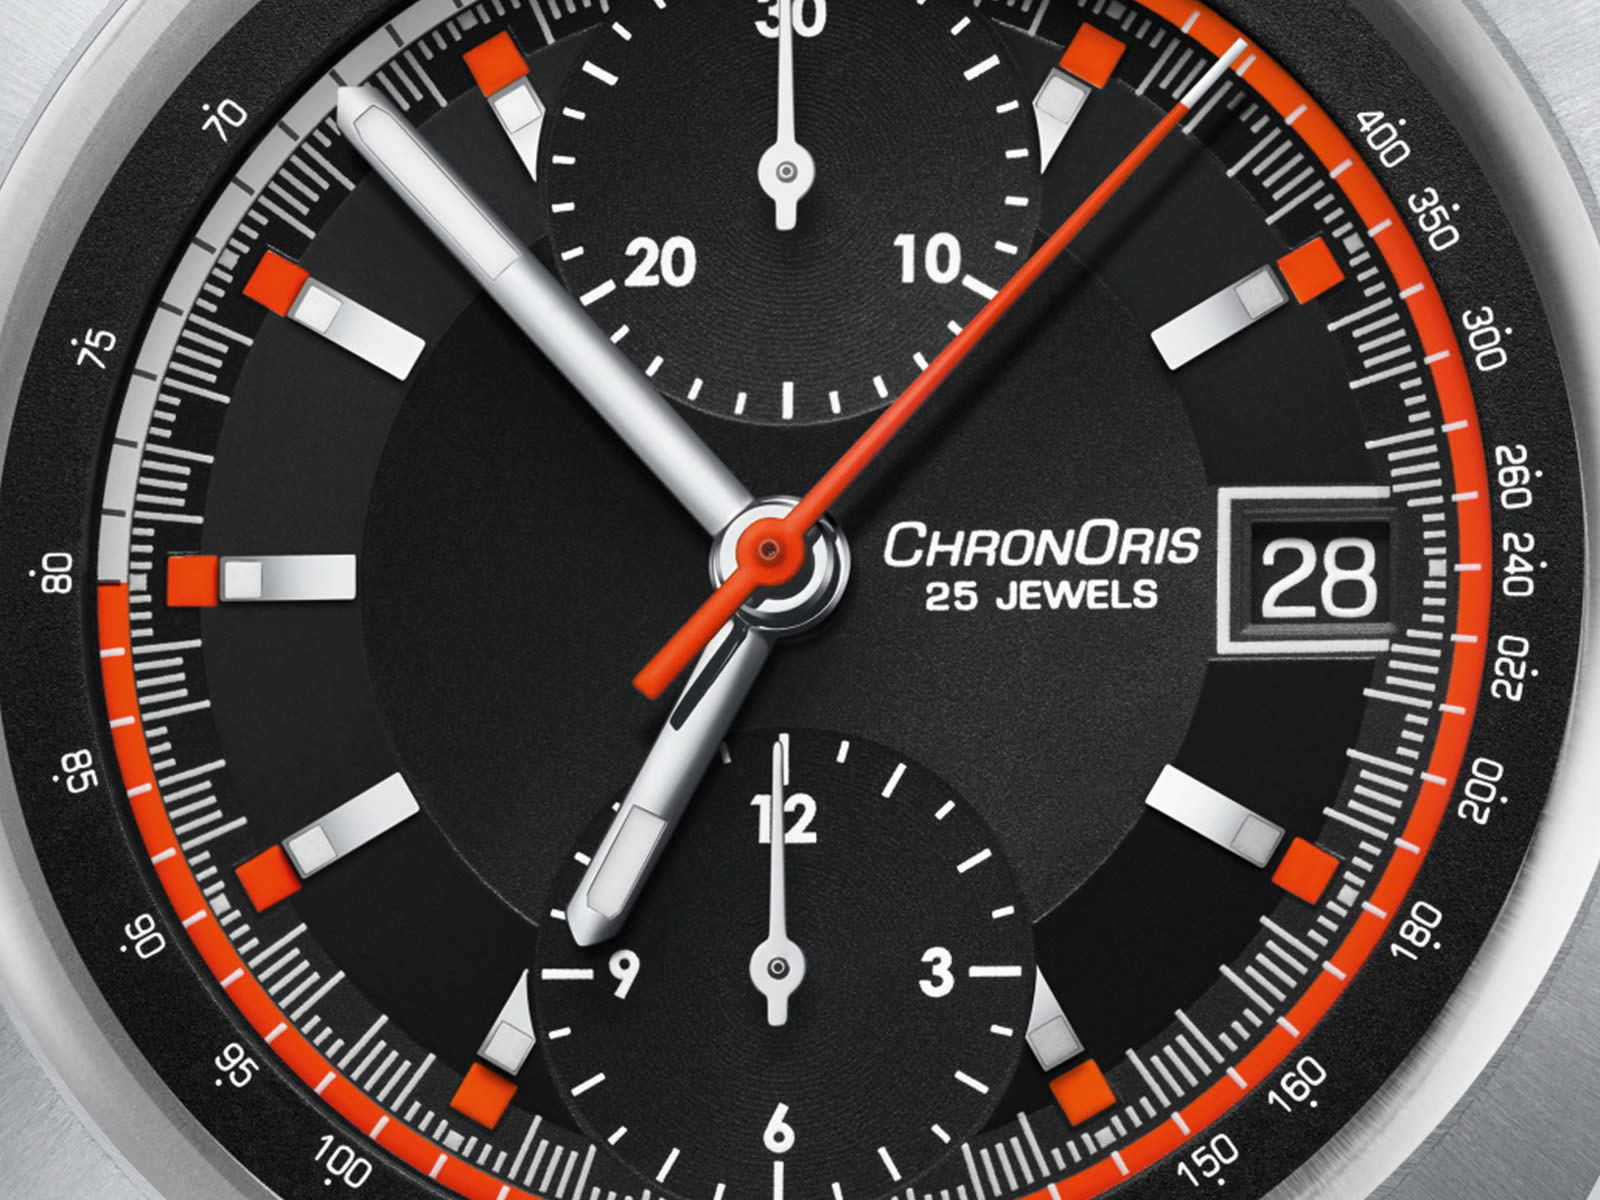 01-673-7739-4034-set-ls-oris-chronoris-limited-edition-4-.jpg